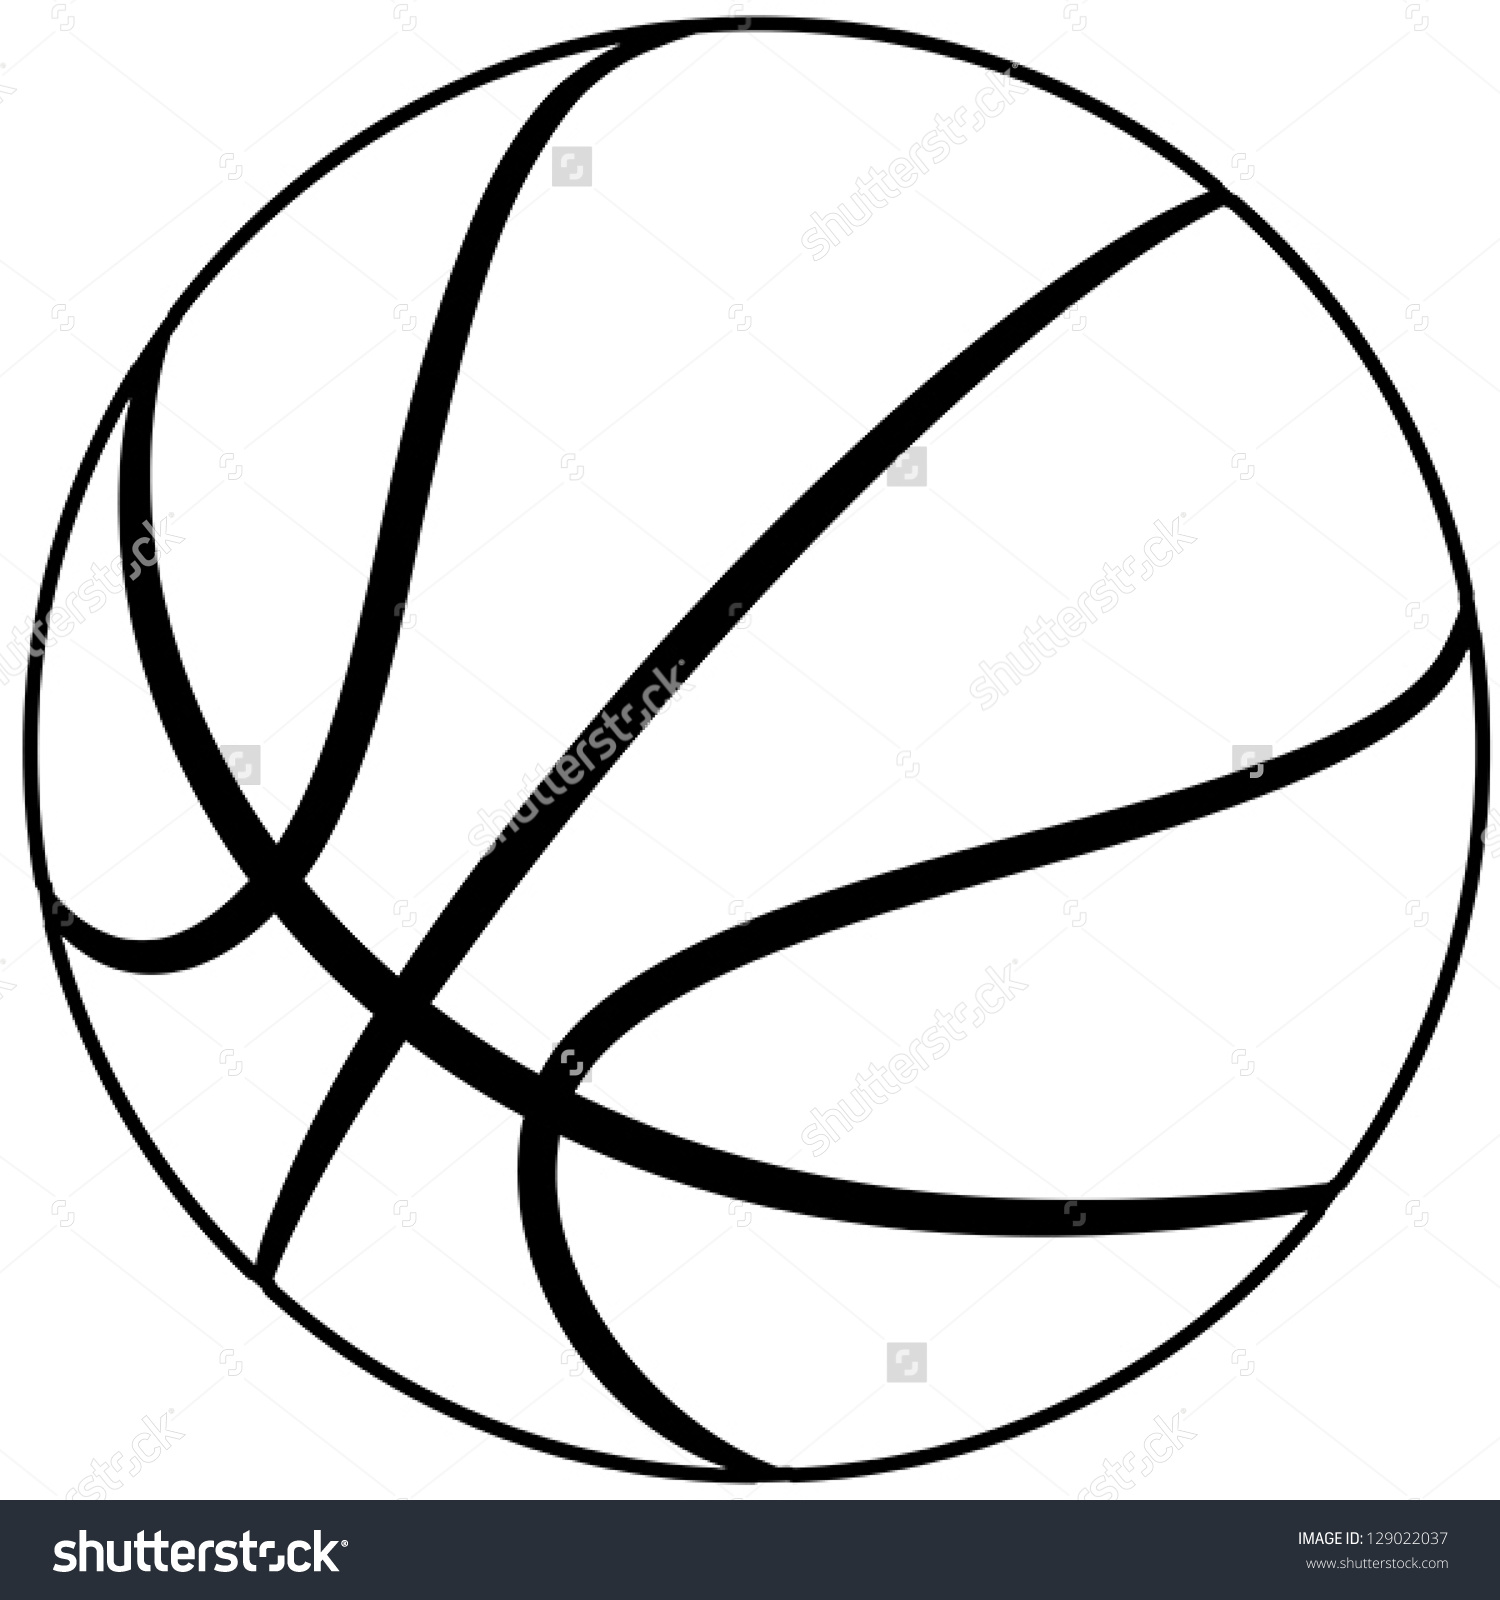 1500x1600 Basketball Outline Clip Art